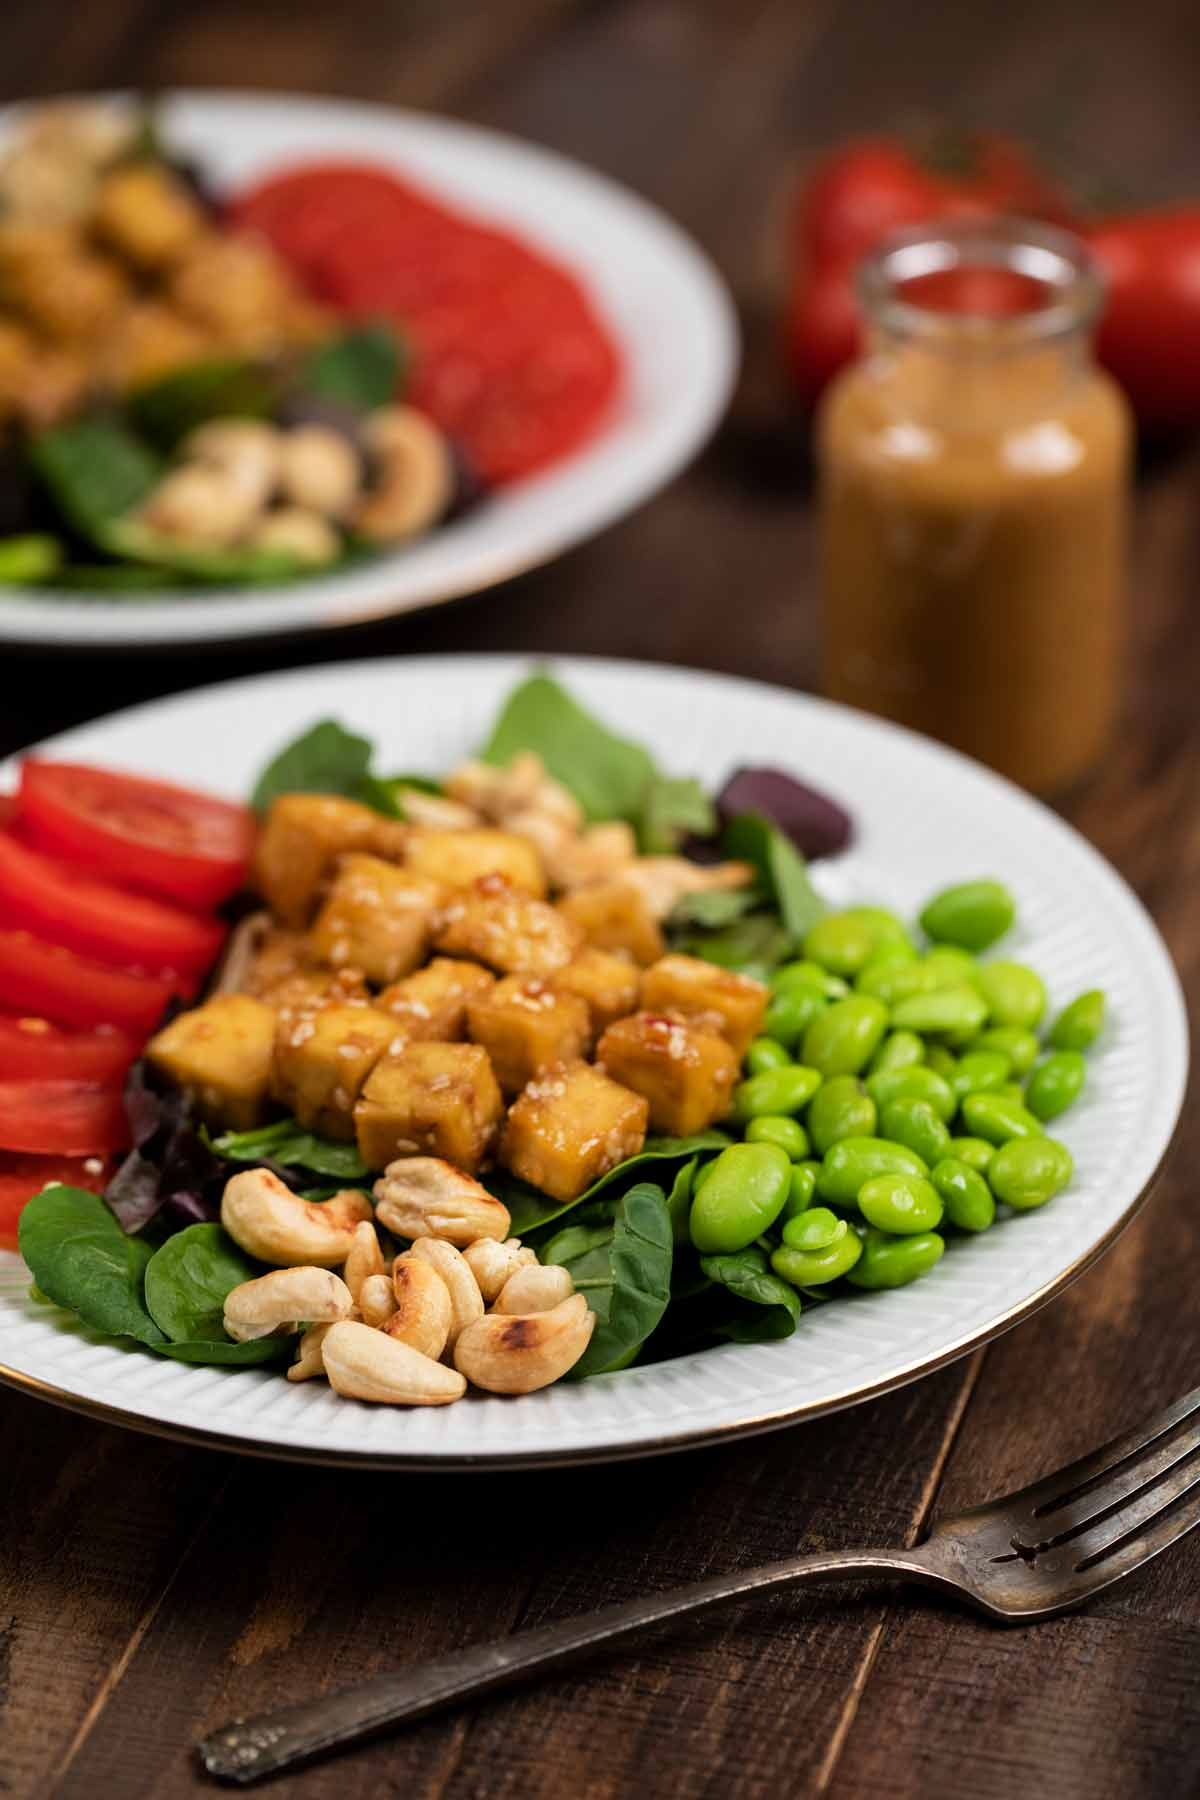 Crispy Sesame Tofu Salad on a white plate with edamame, tomatoes and roasted cashews.